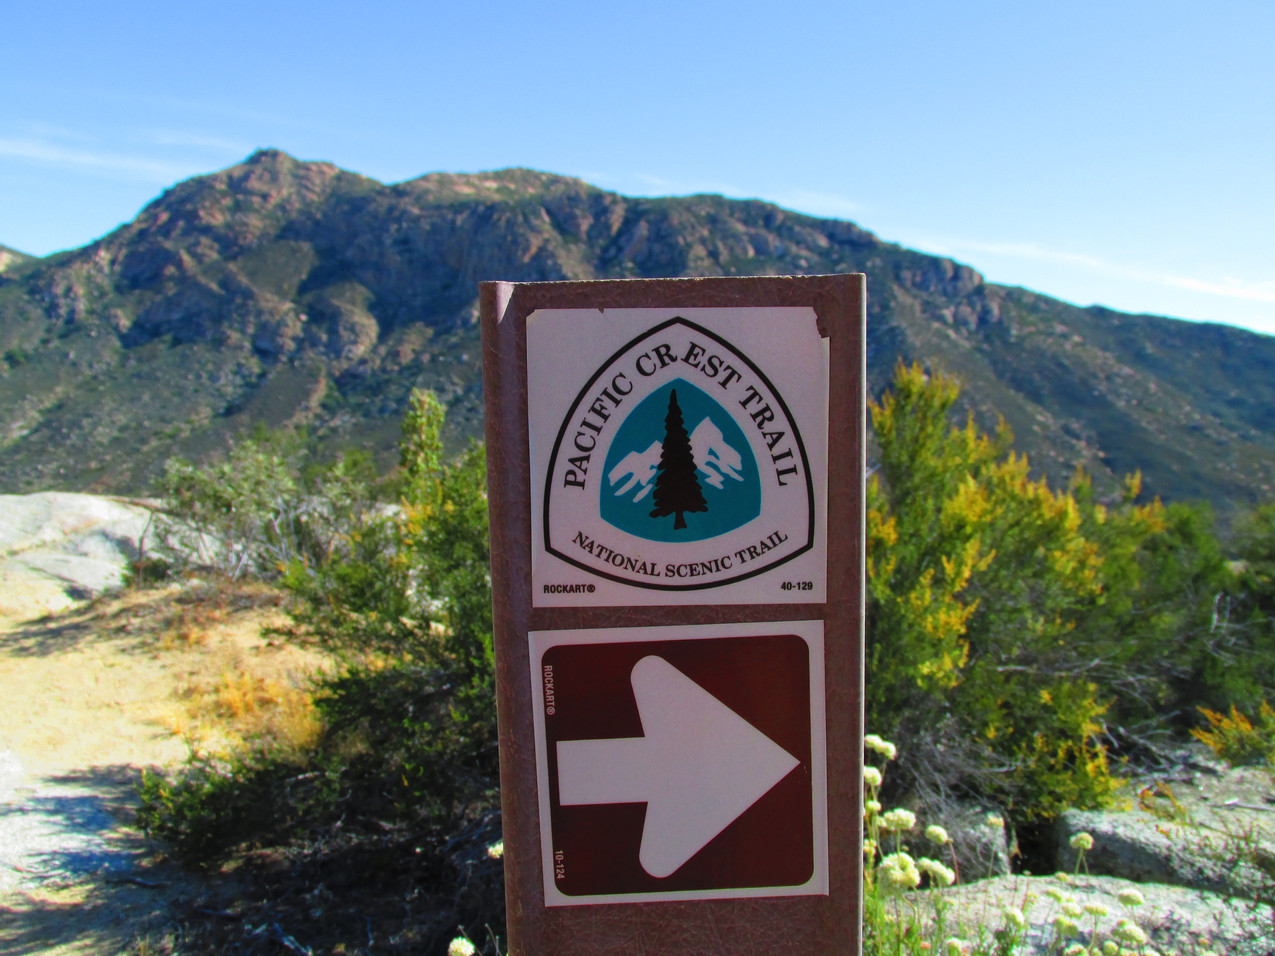 Navigation on the PCT was normally as easy as following signs like this.